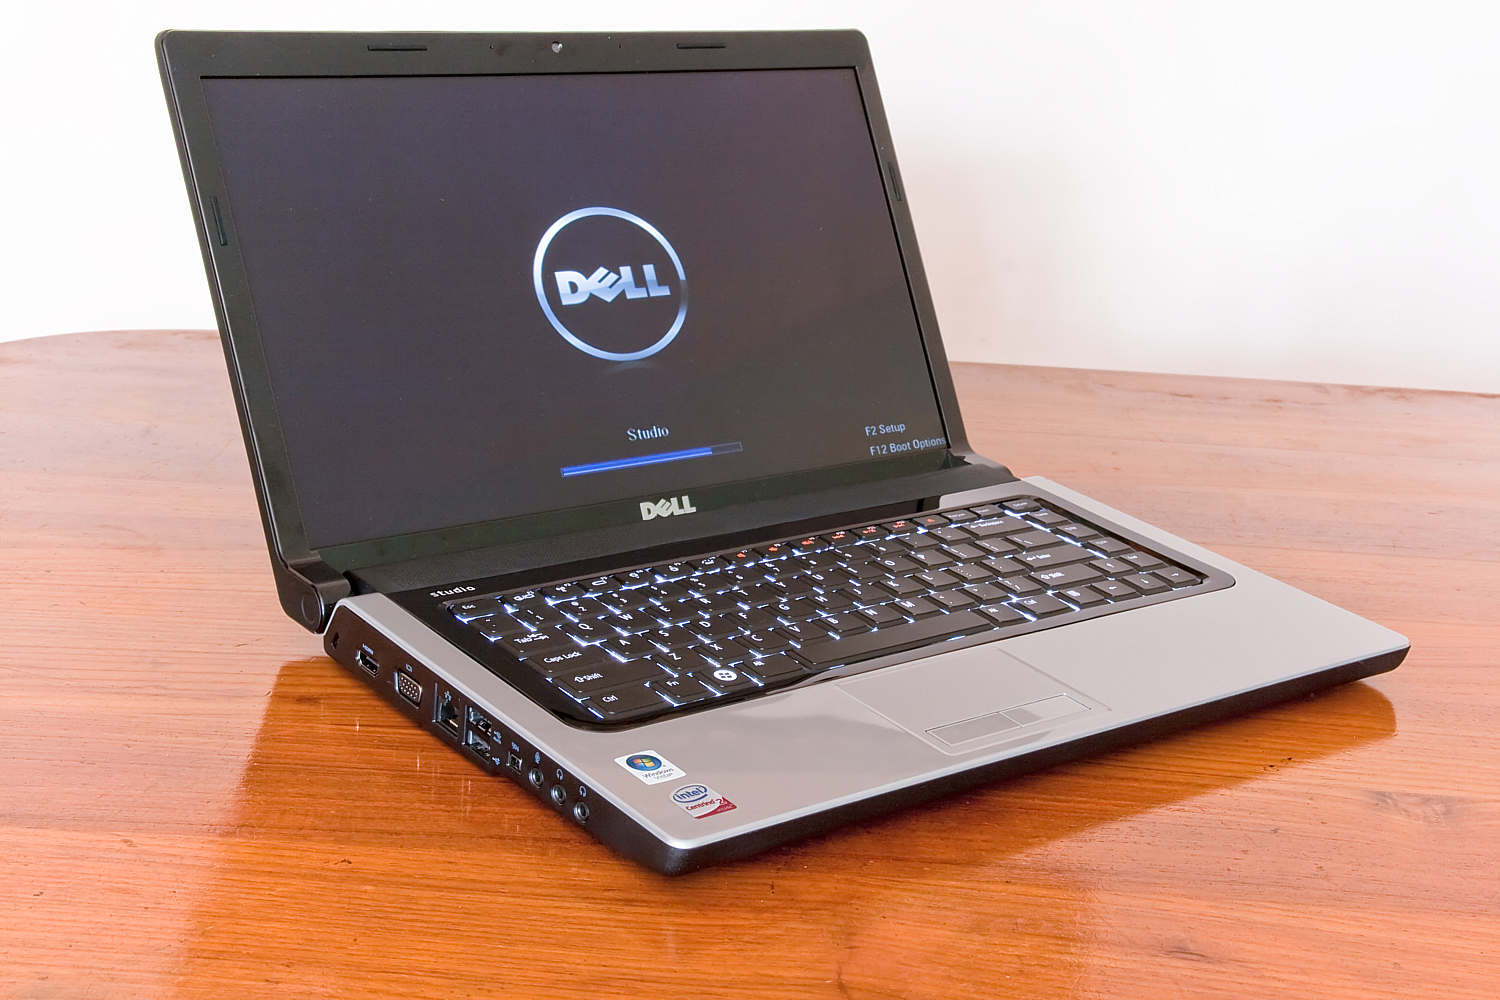 Dell pp39l driver for mac download.